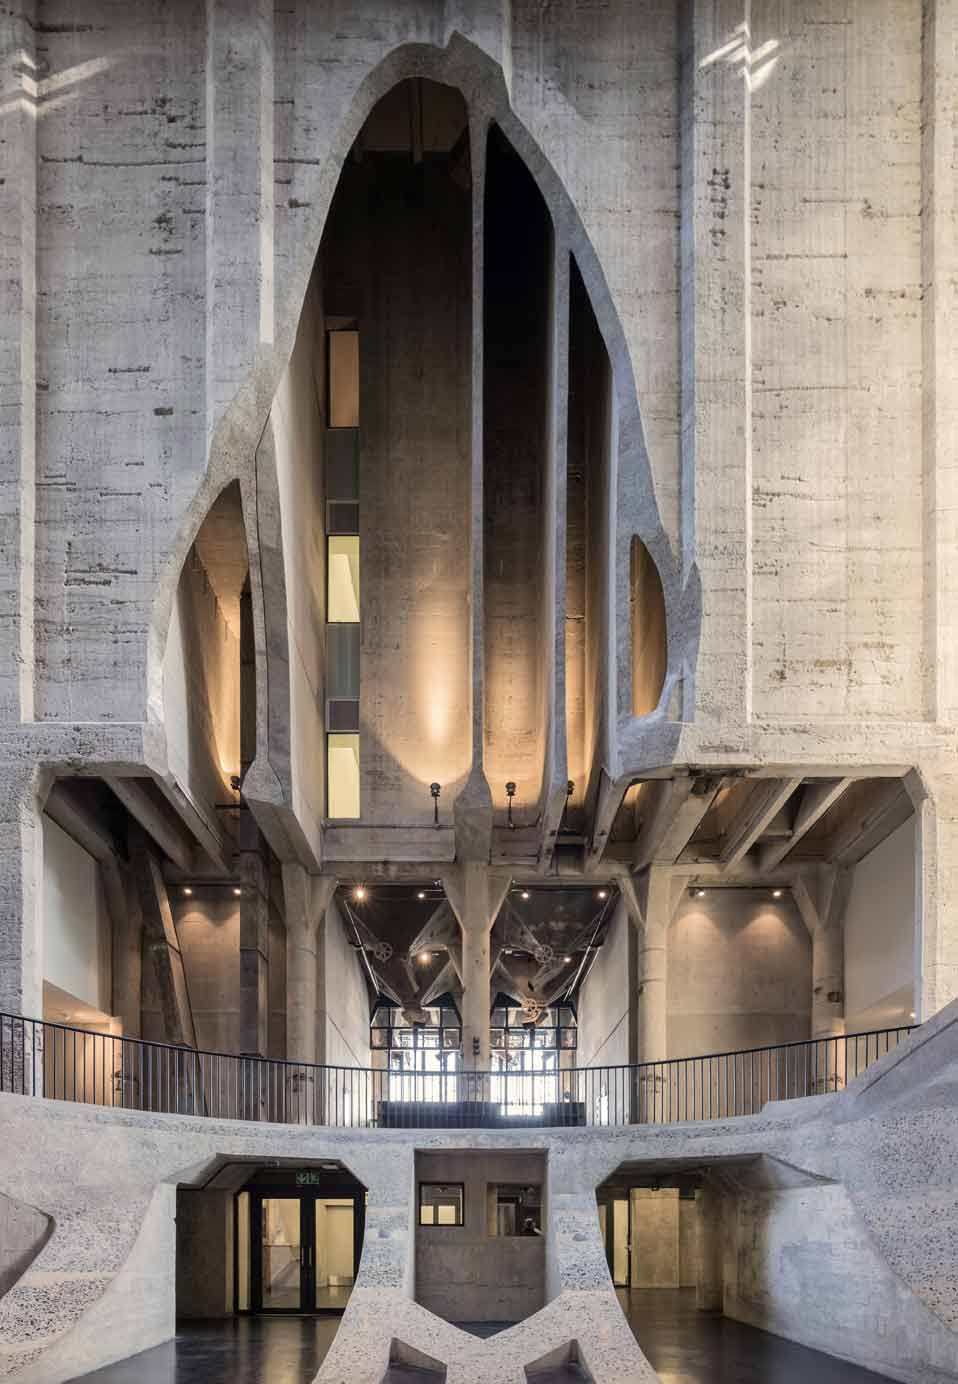 ZeitzMOCAA_HeatherwickStudio_Credit_Iwan-Baan_Atrium-view-towards-entrance